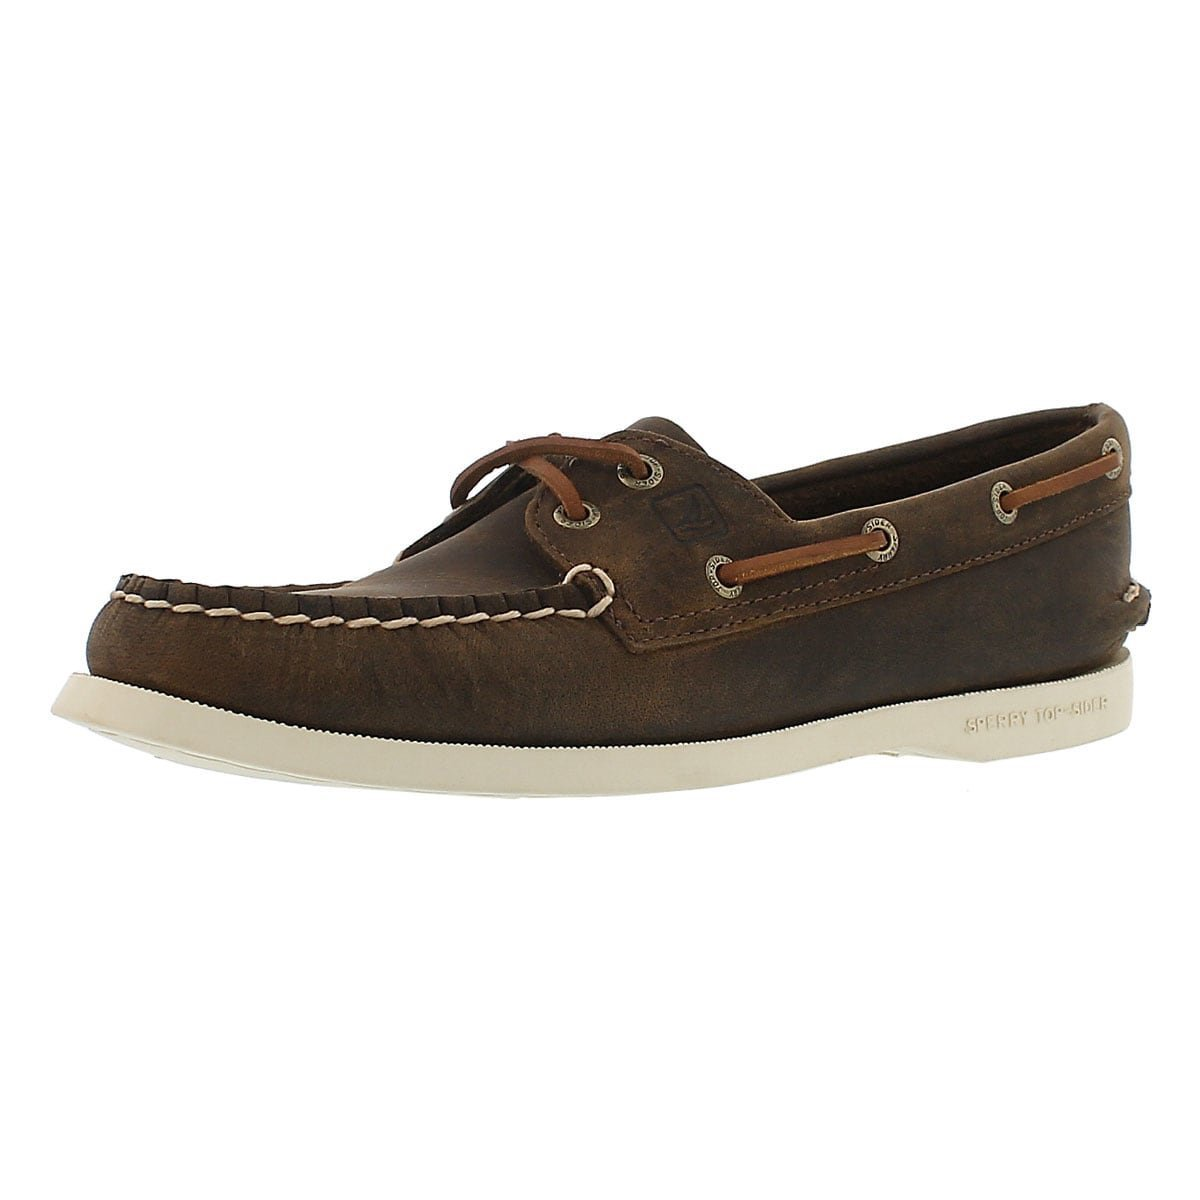 Sperry Top-Sider Women's Authentic Original Boat Shoe, Brown Distressed, 9 M US